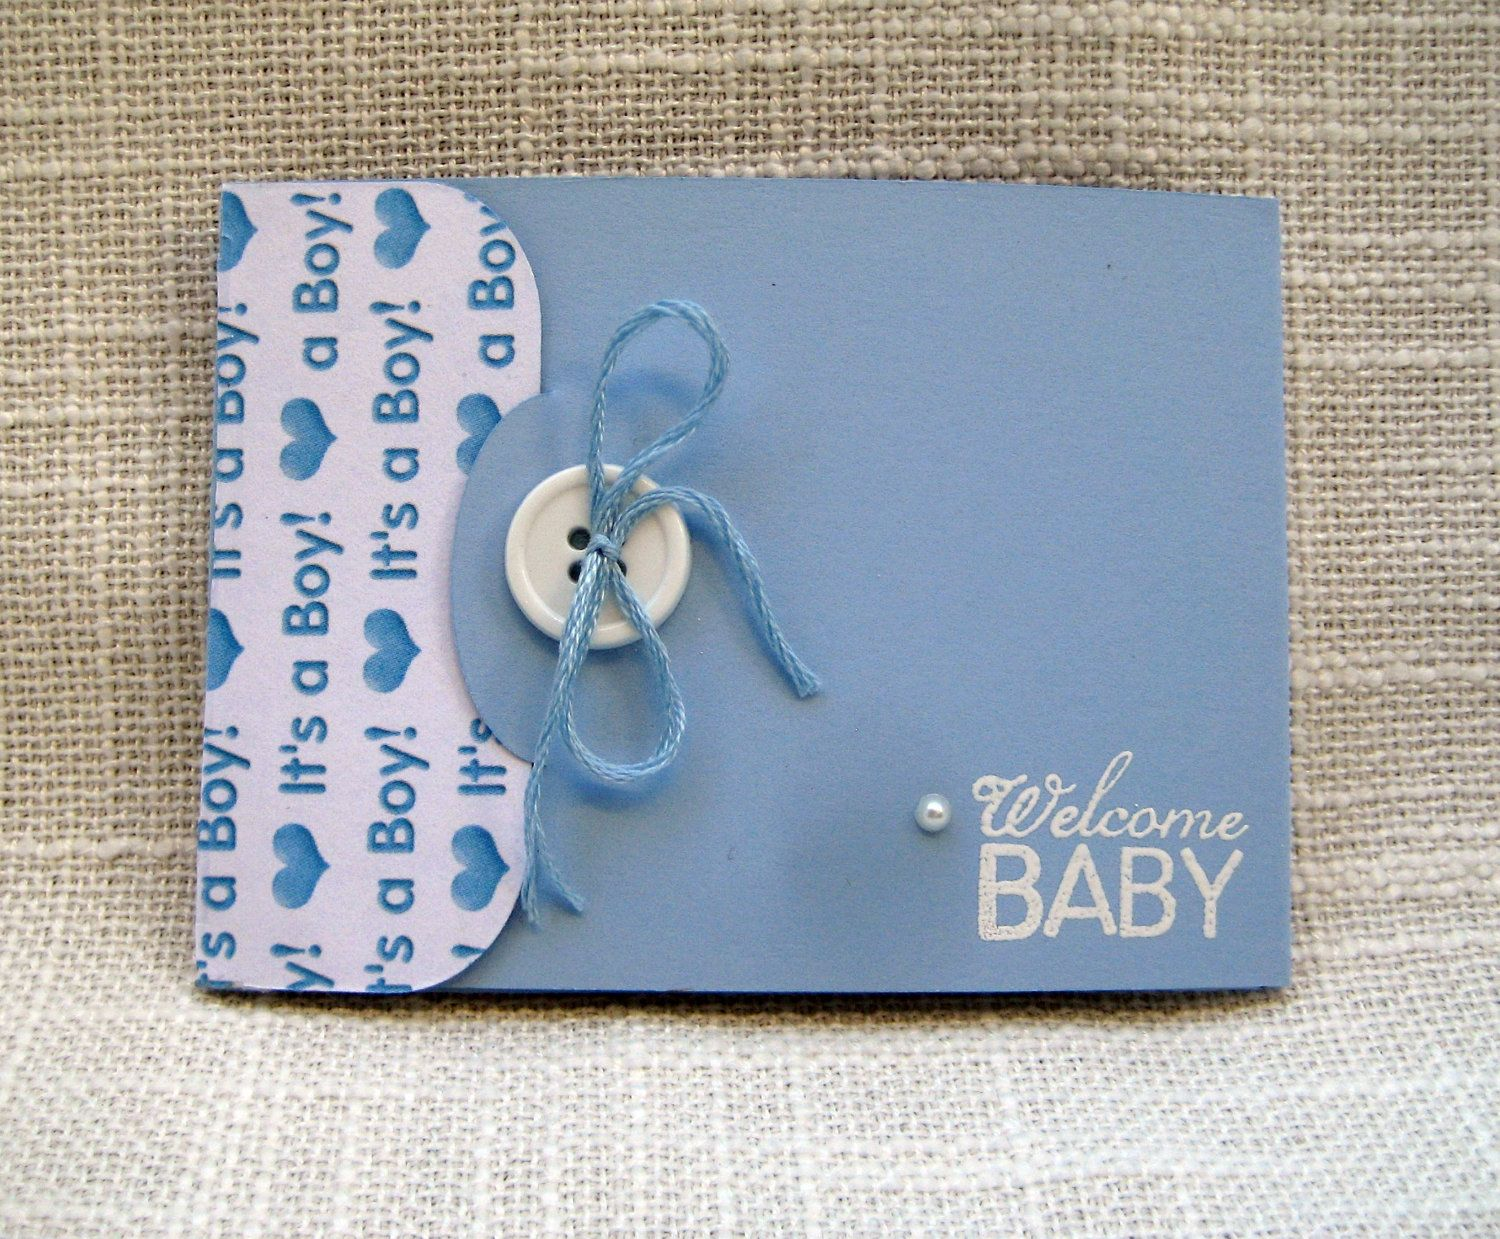 Handmade baby boy gift card holder baby shower blue white handmade baby boy gift card holder baby shower blue white congratulations negle Gallery